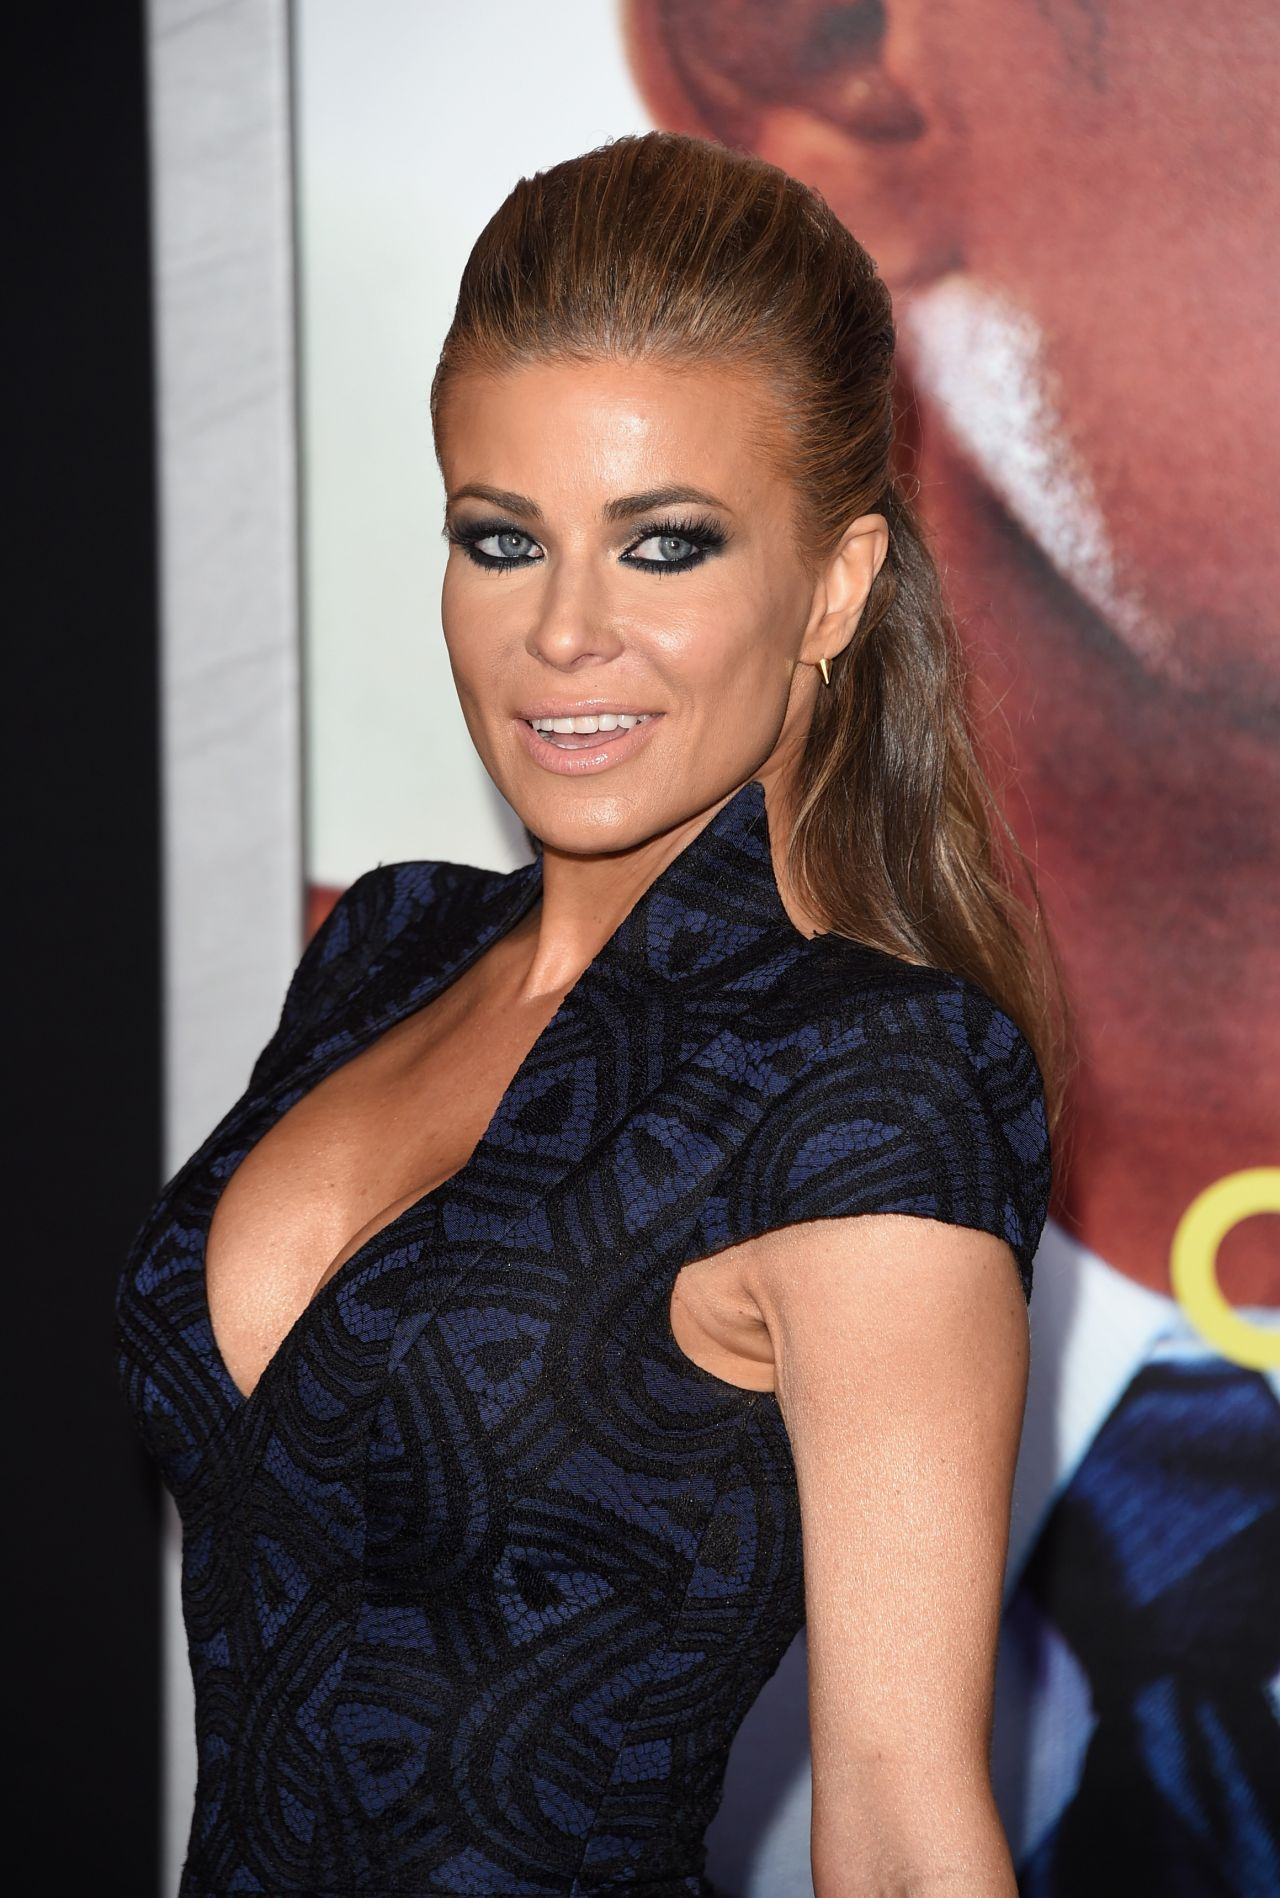 Carmen Electra  Focus Film Premiere in Los Angeles - 2015 Summer Hairstyles